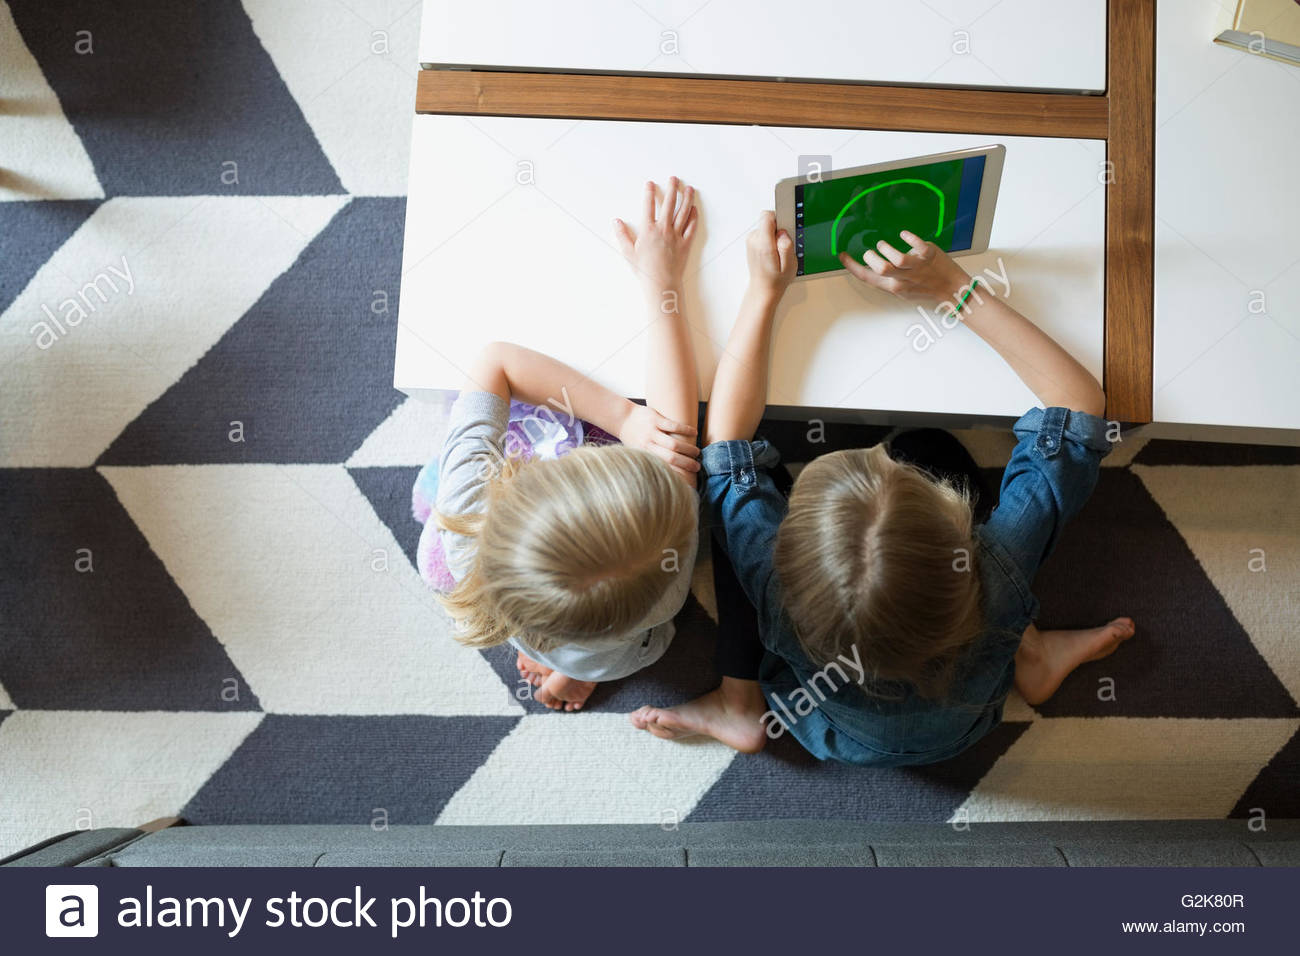 Overhead view of sisters using digital tablet - Stock Image